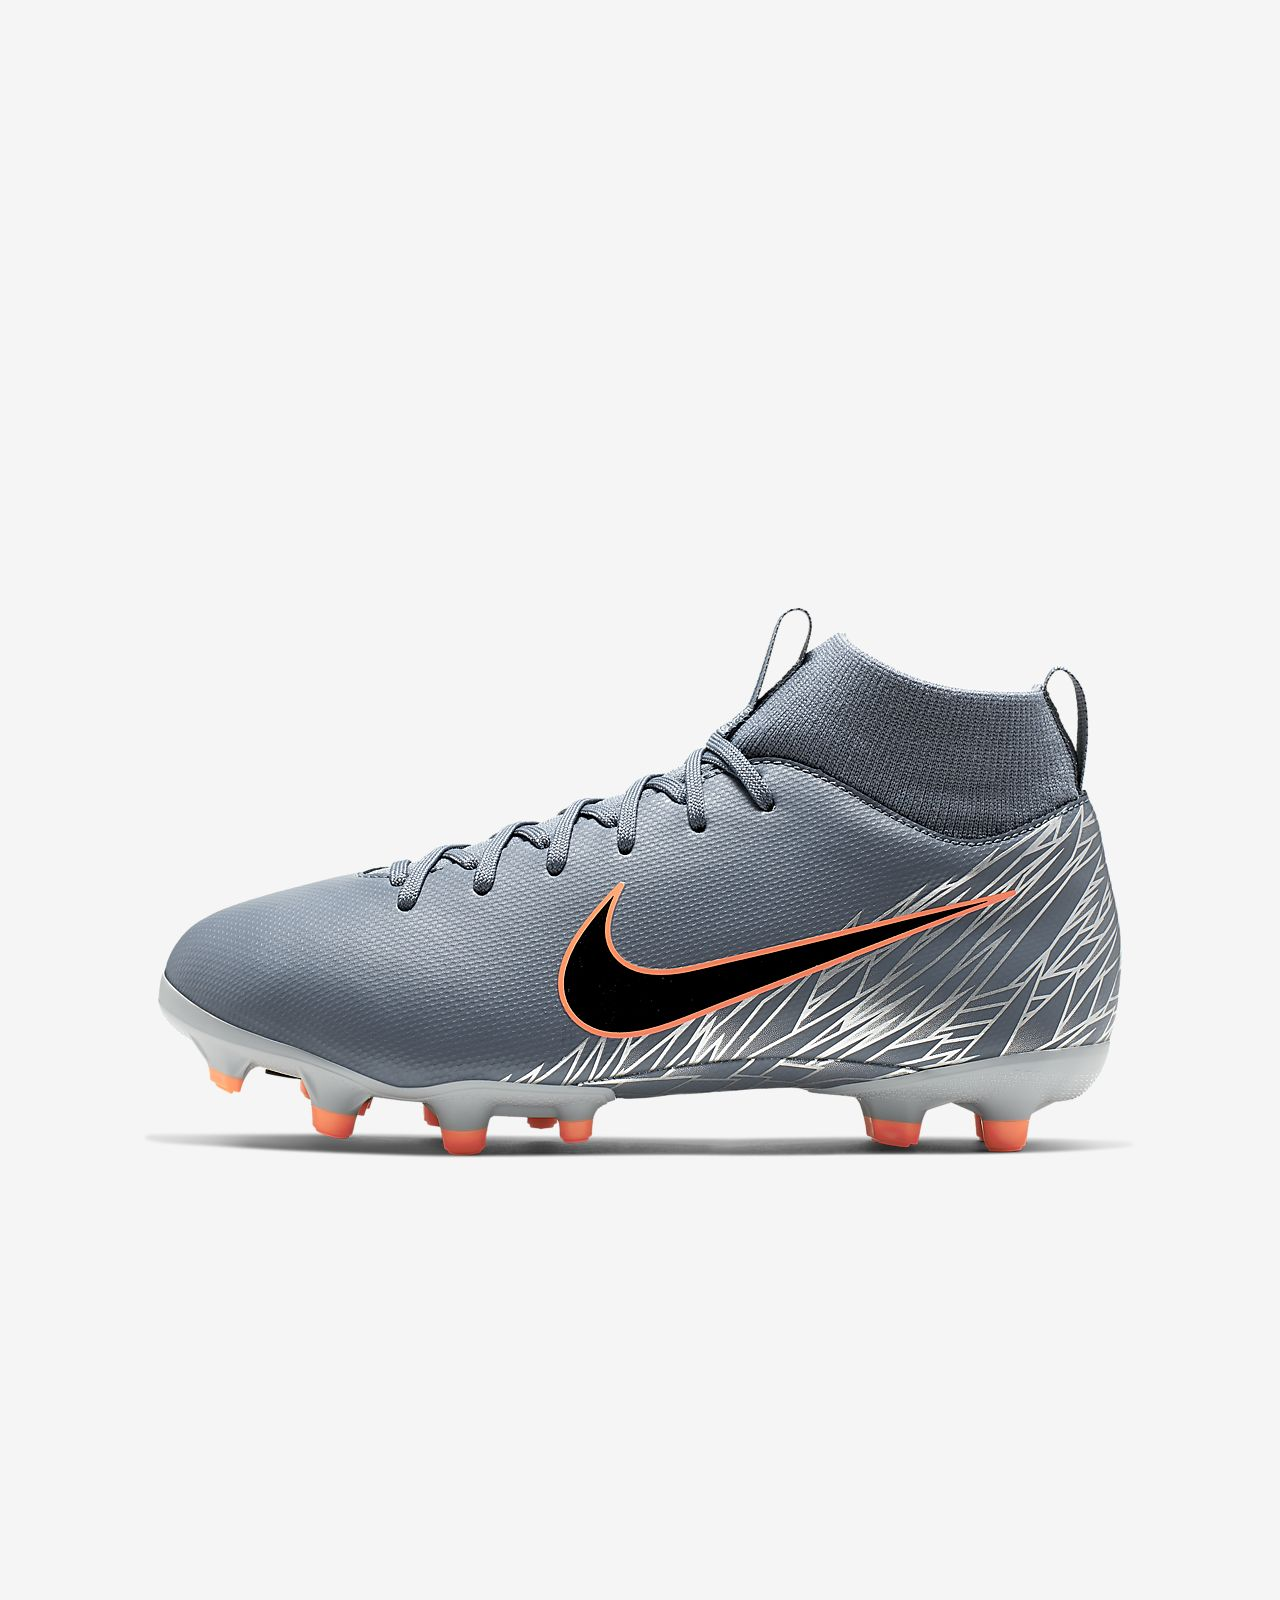 new arrival 1510a 9bc1e ... Nike Jr. Superfly 6 Academy MG Little Big Kids  Multi-Ground Soccer